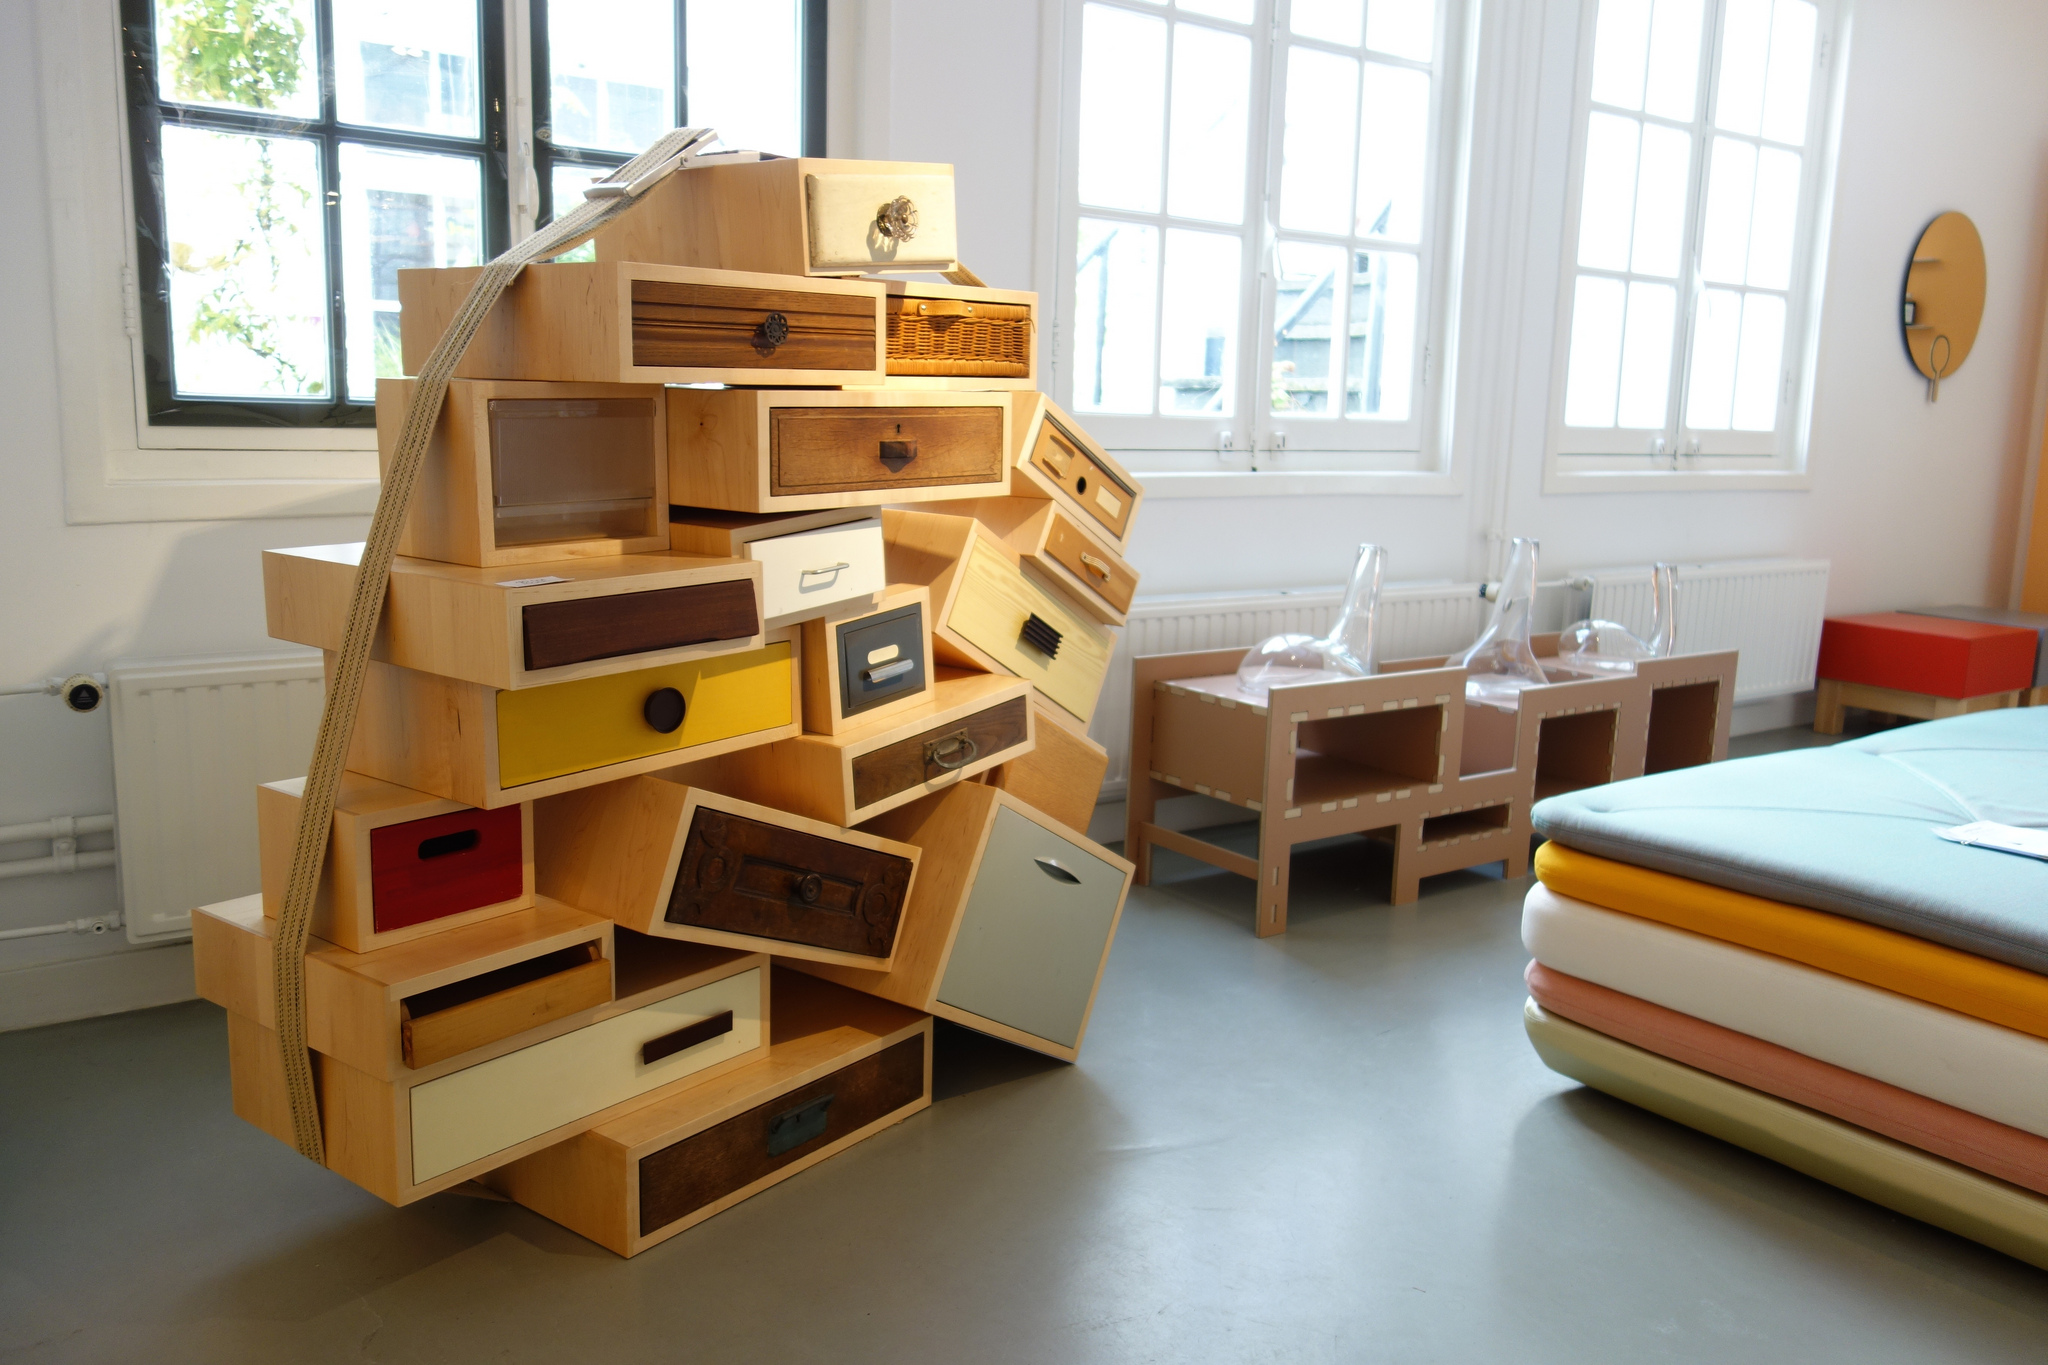 7 best concept stores to visit in amsterdam